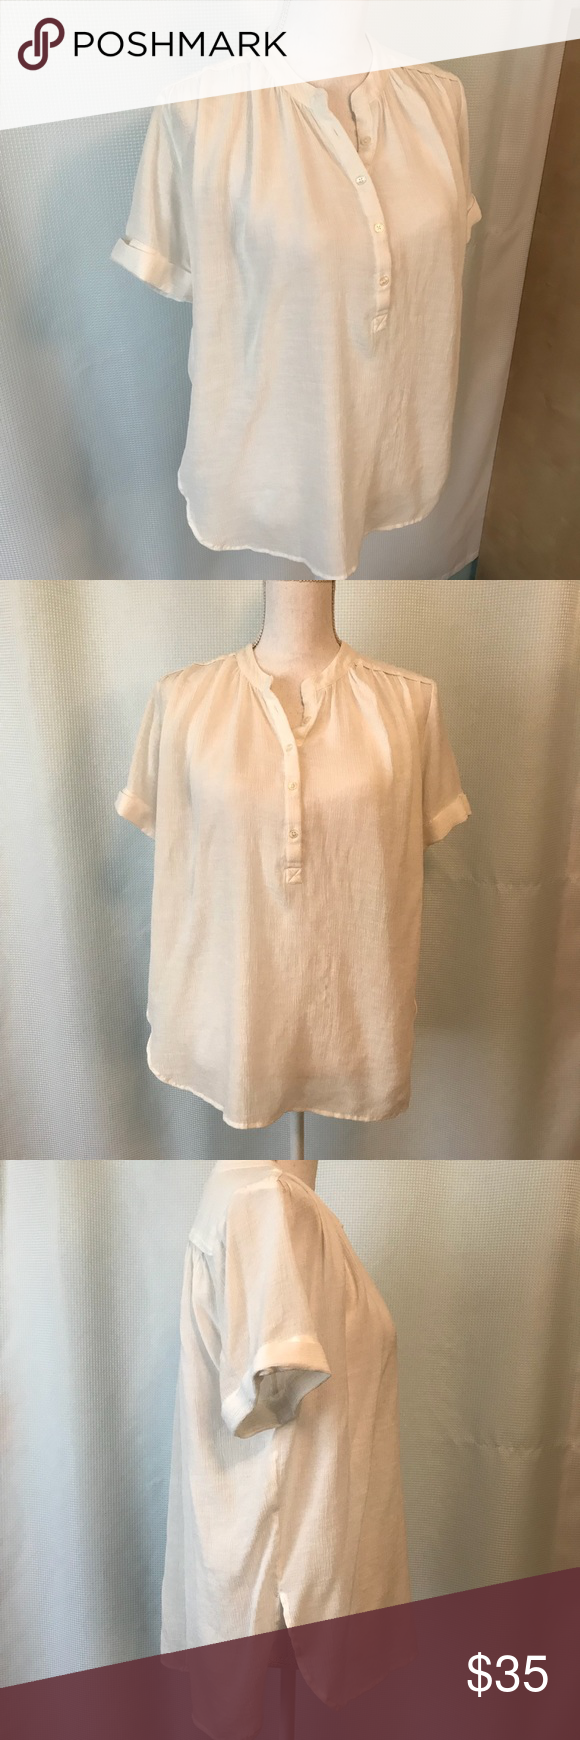 Anthropologie Maeve White Peasant Blouse White peasant